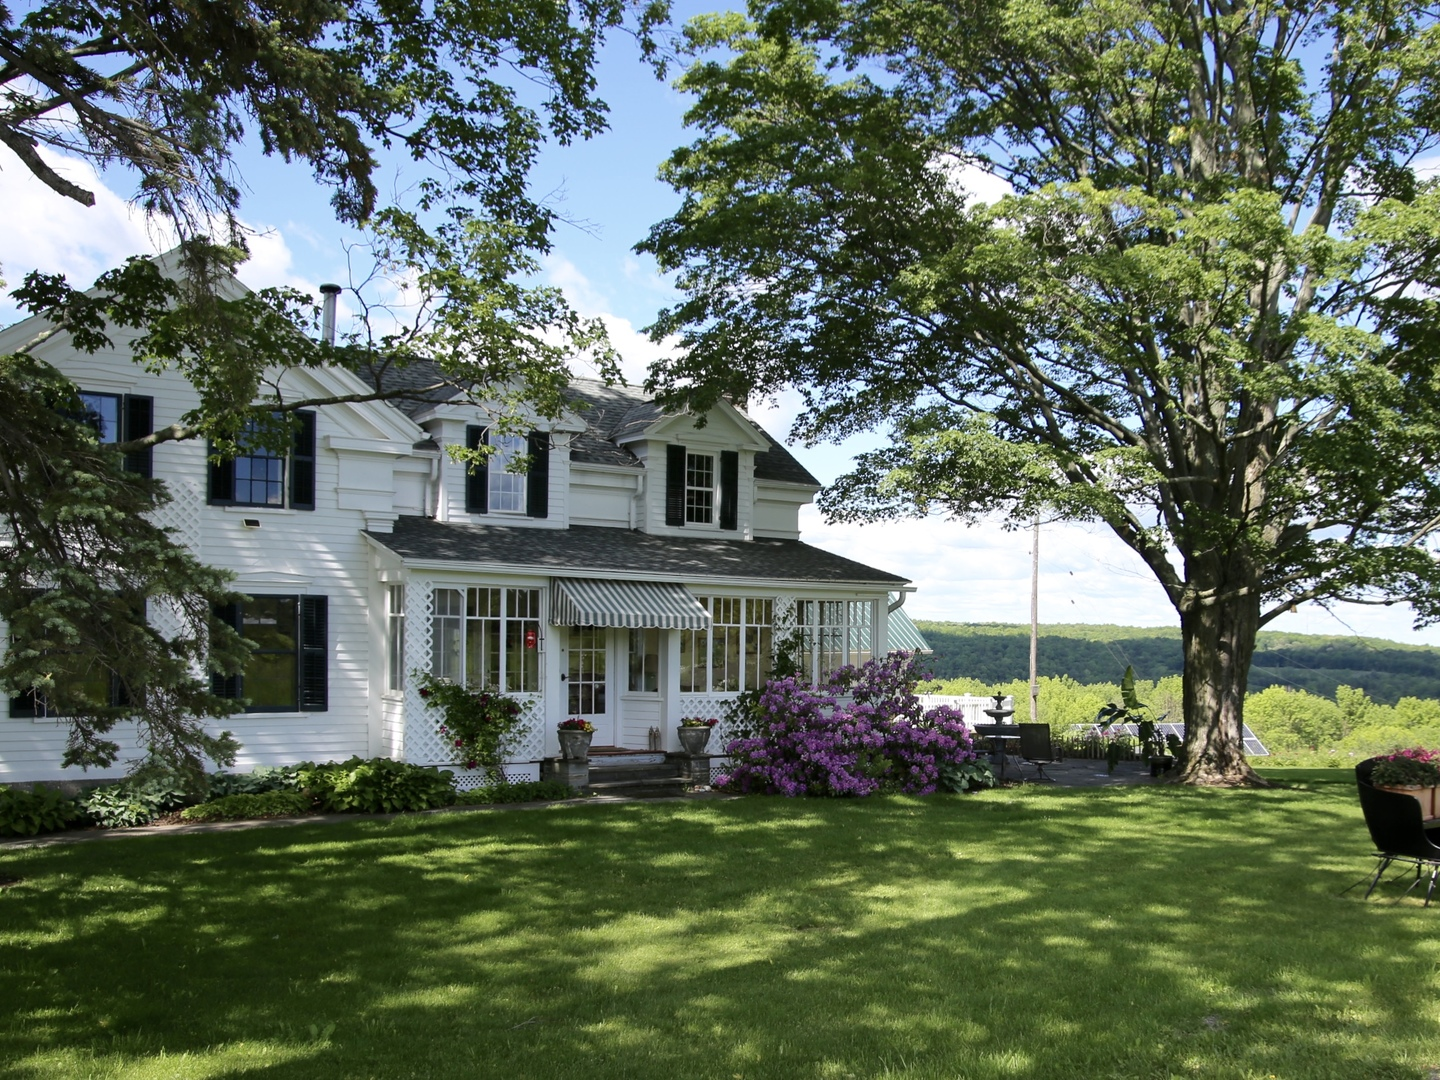 A large lawn in front of a house at Enfield Manor Bed and Breakfast and Vacation Rentals.